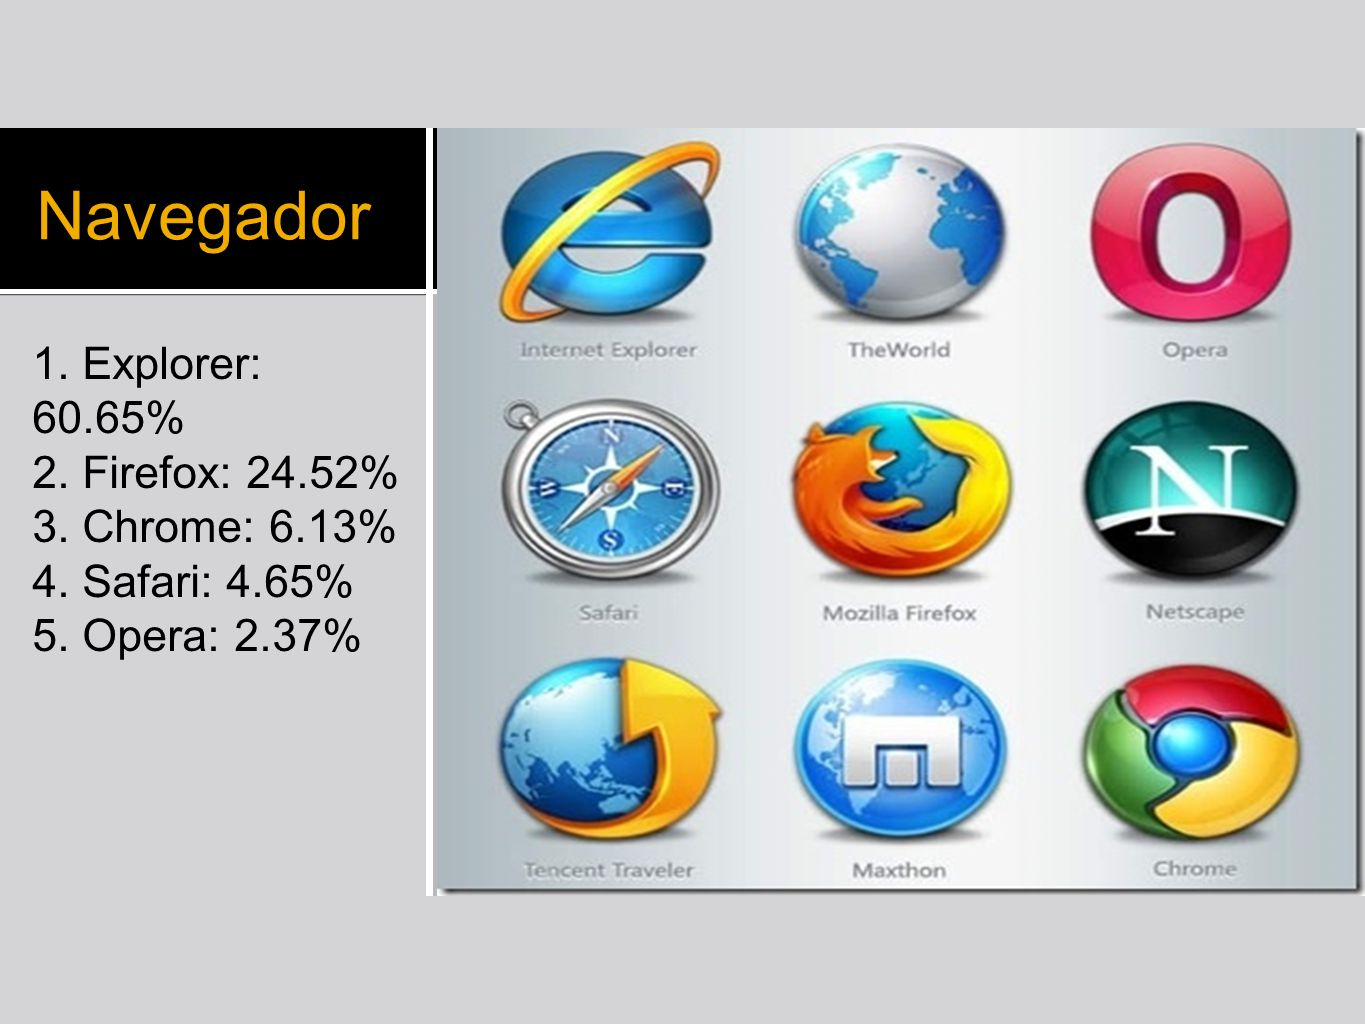 Navegador 1. Explorer: 60.65% 2. Firefox: 24.52% 3. Chrome: 6.13%